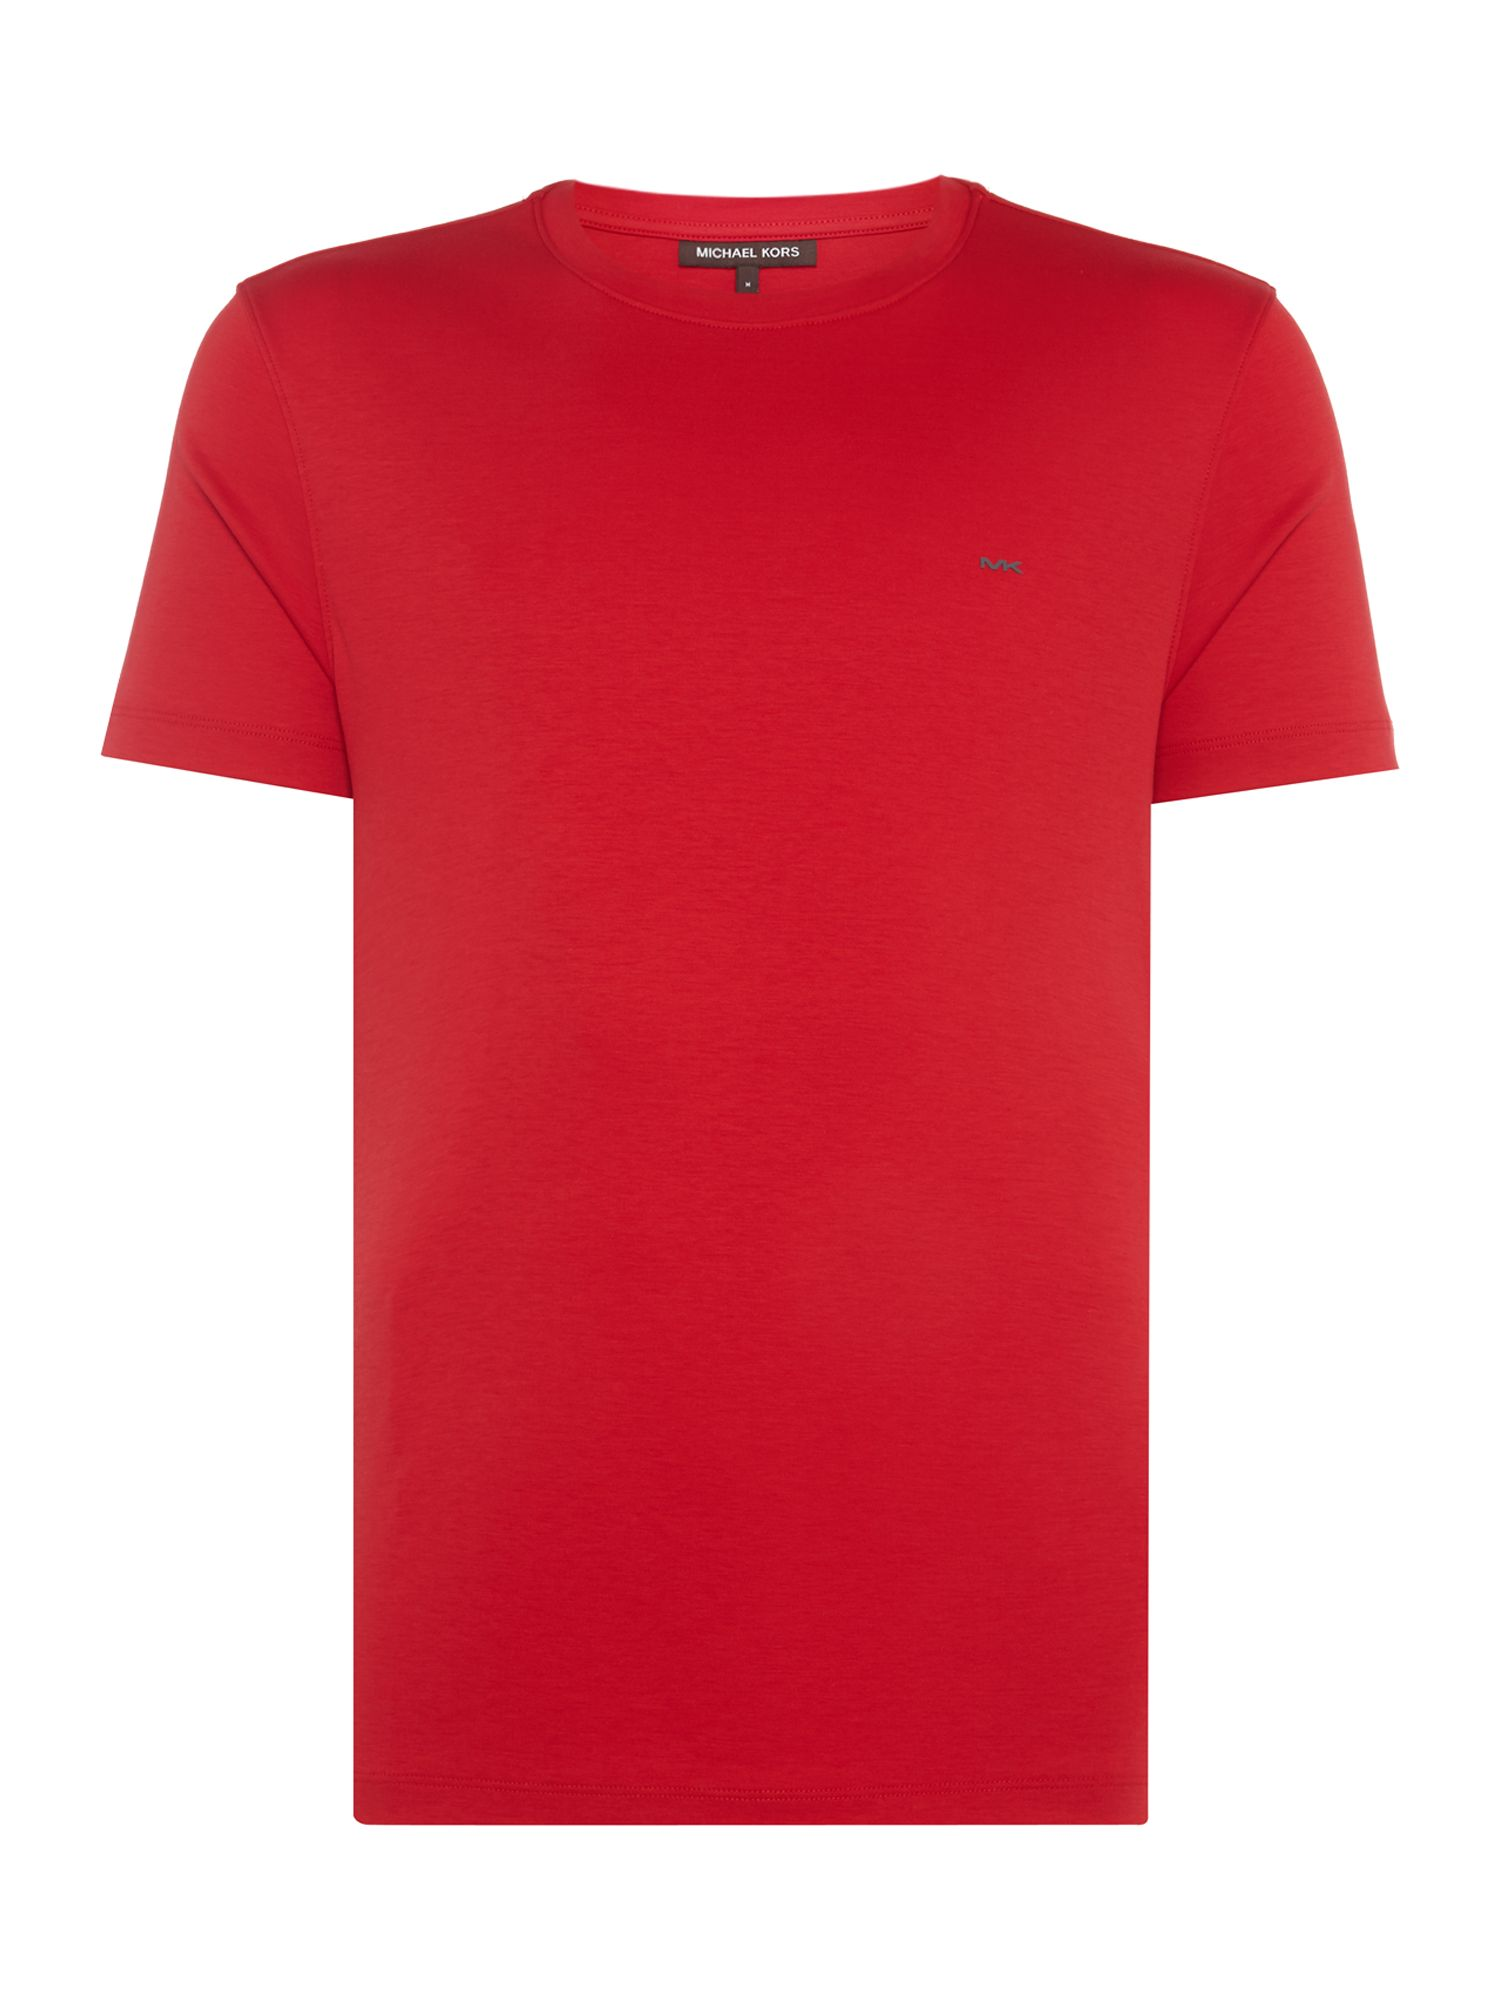 Men's Michael Kors Sleek Crew Neck T-Shirt, Red